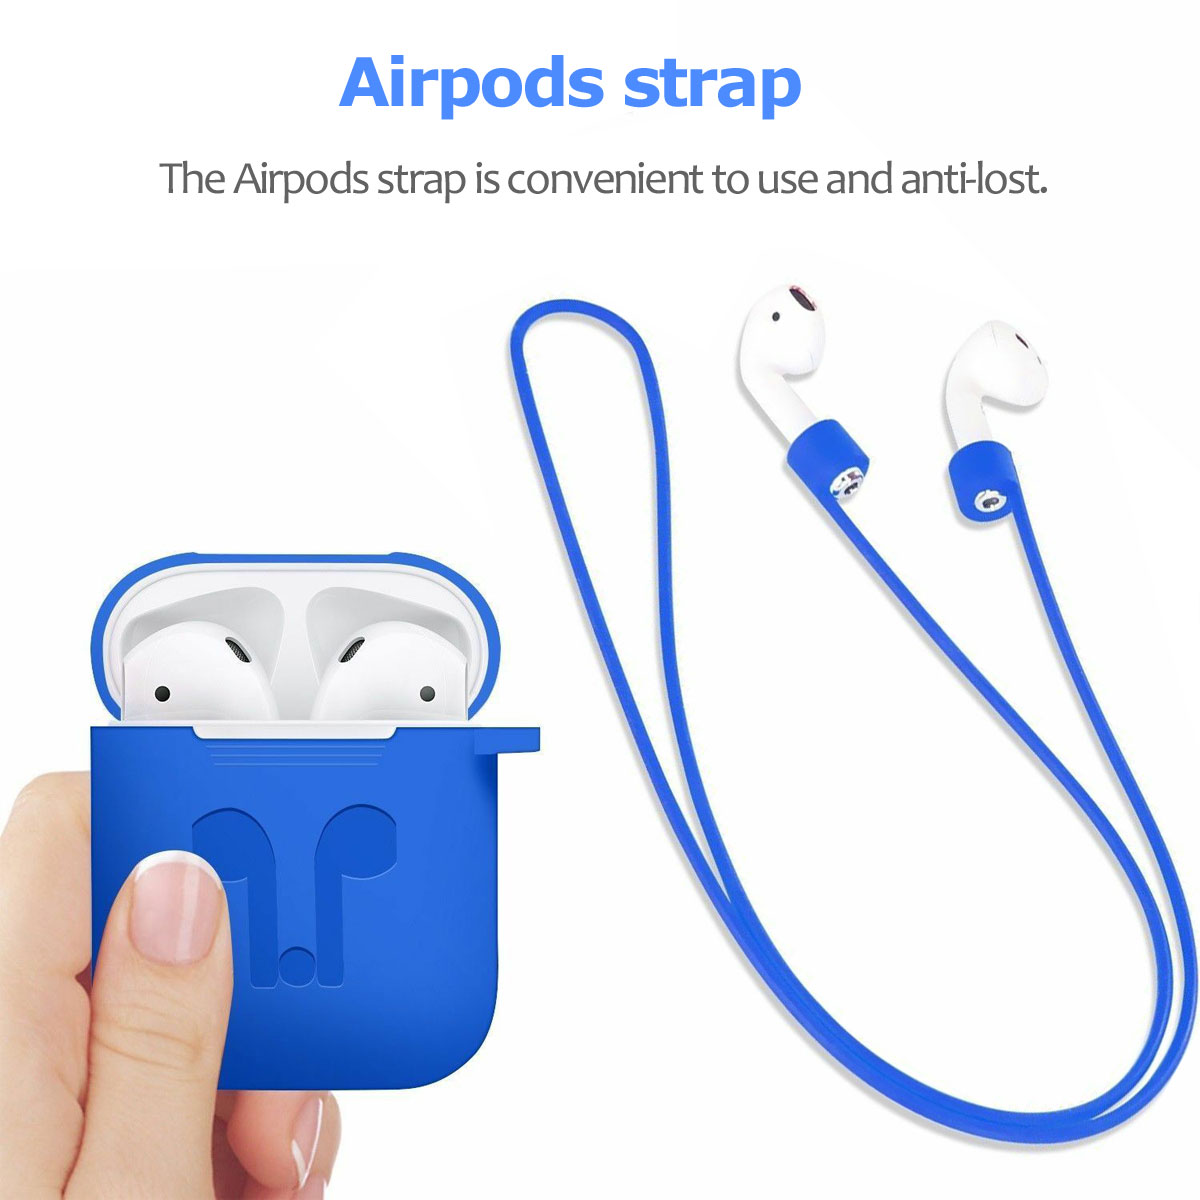 Silicone-Ruggged-Case-Cover-Earbuds-For-Apple-AirPods-2nd-Gen-Accessories-2019 thumbnail 38